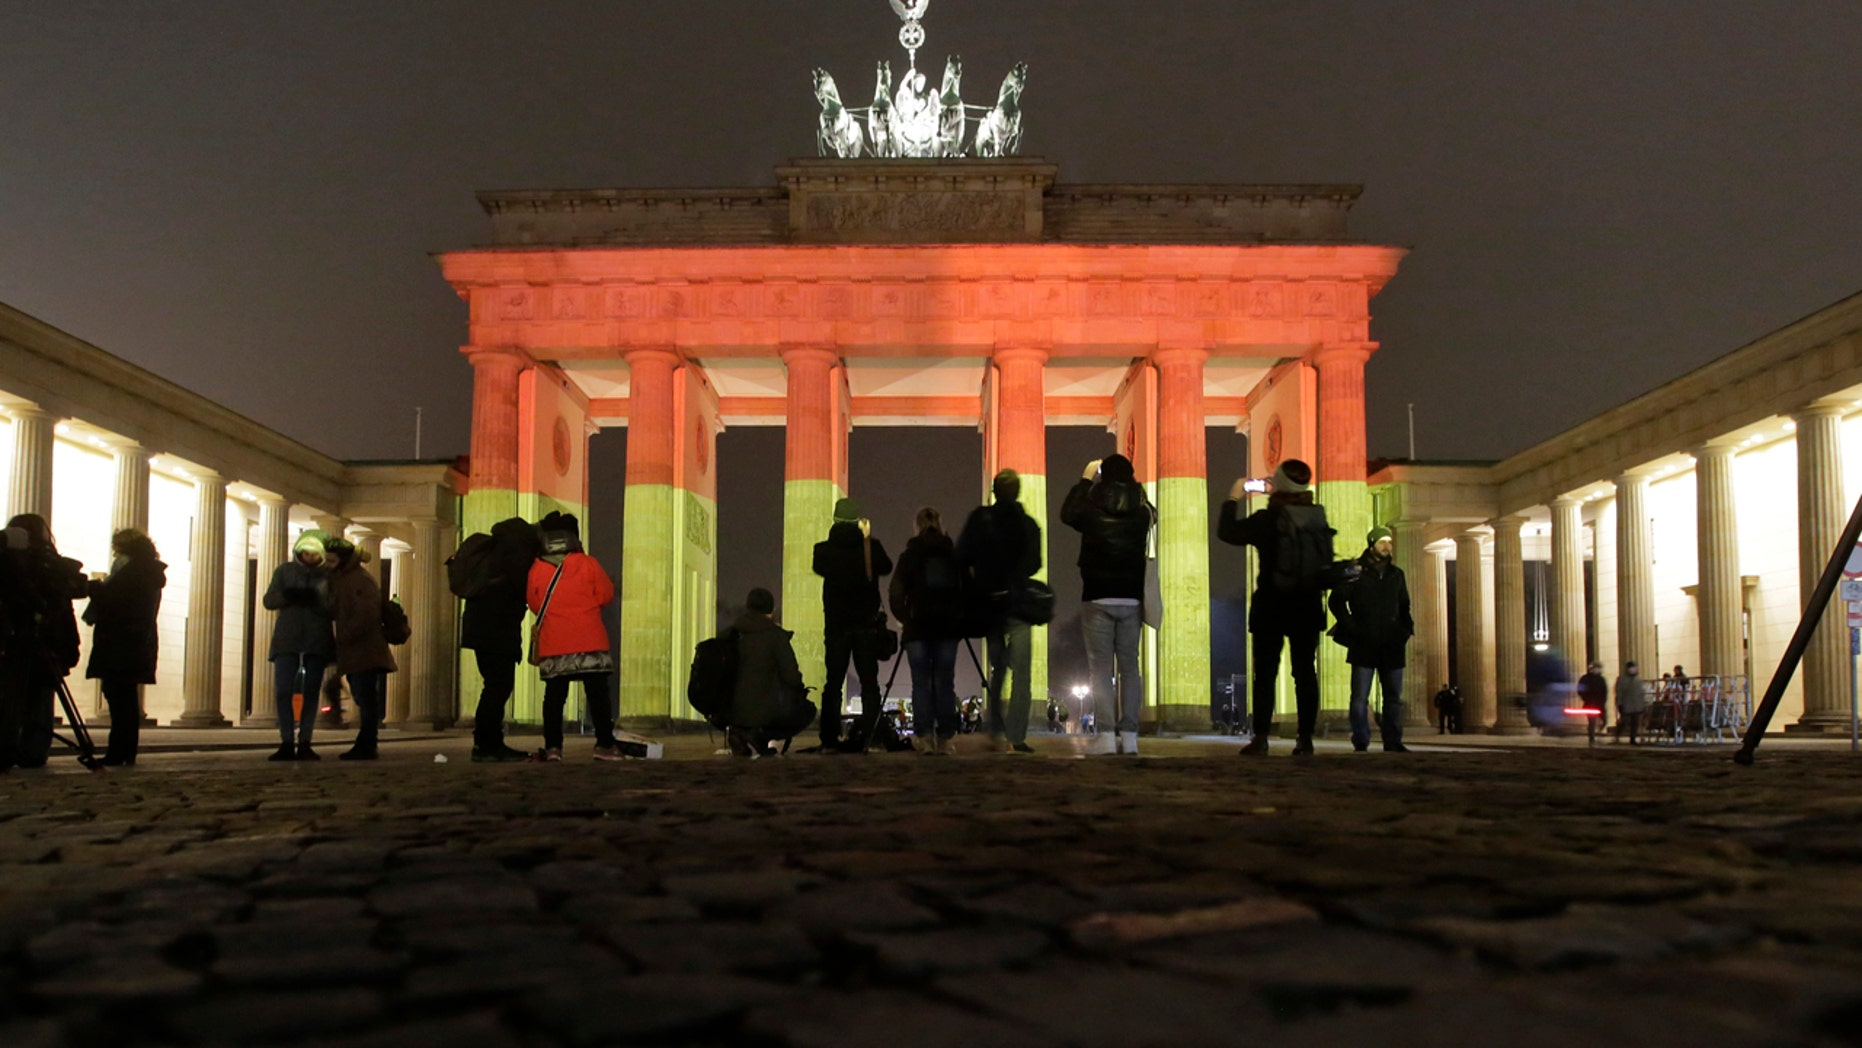 The Brandenburg Gate is illuminated in the colors of the German flag in Berlin, Germany, Tuesday, Dec. 20, 2016, the day after a truck ran into a crowded Christmas market and killed several people. (AP Photo/Markus Schreiber)